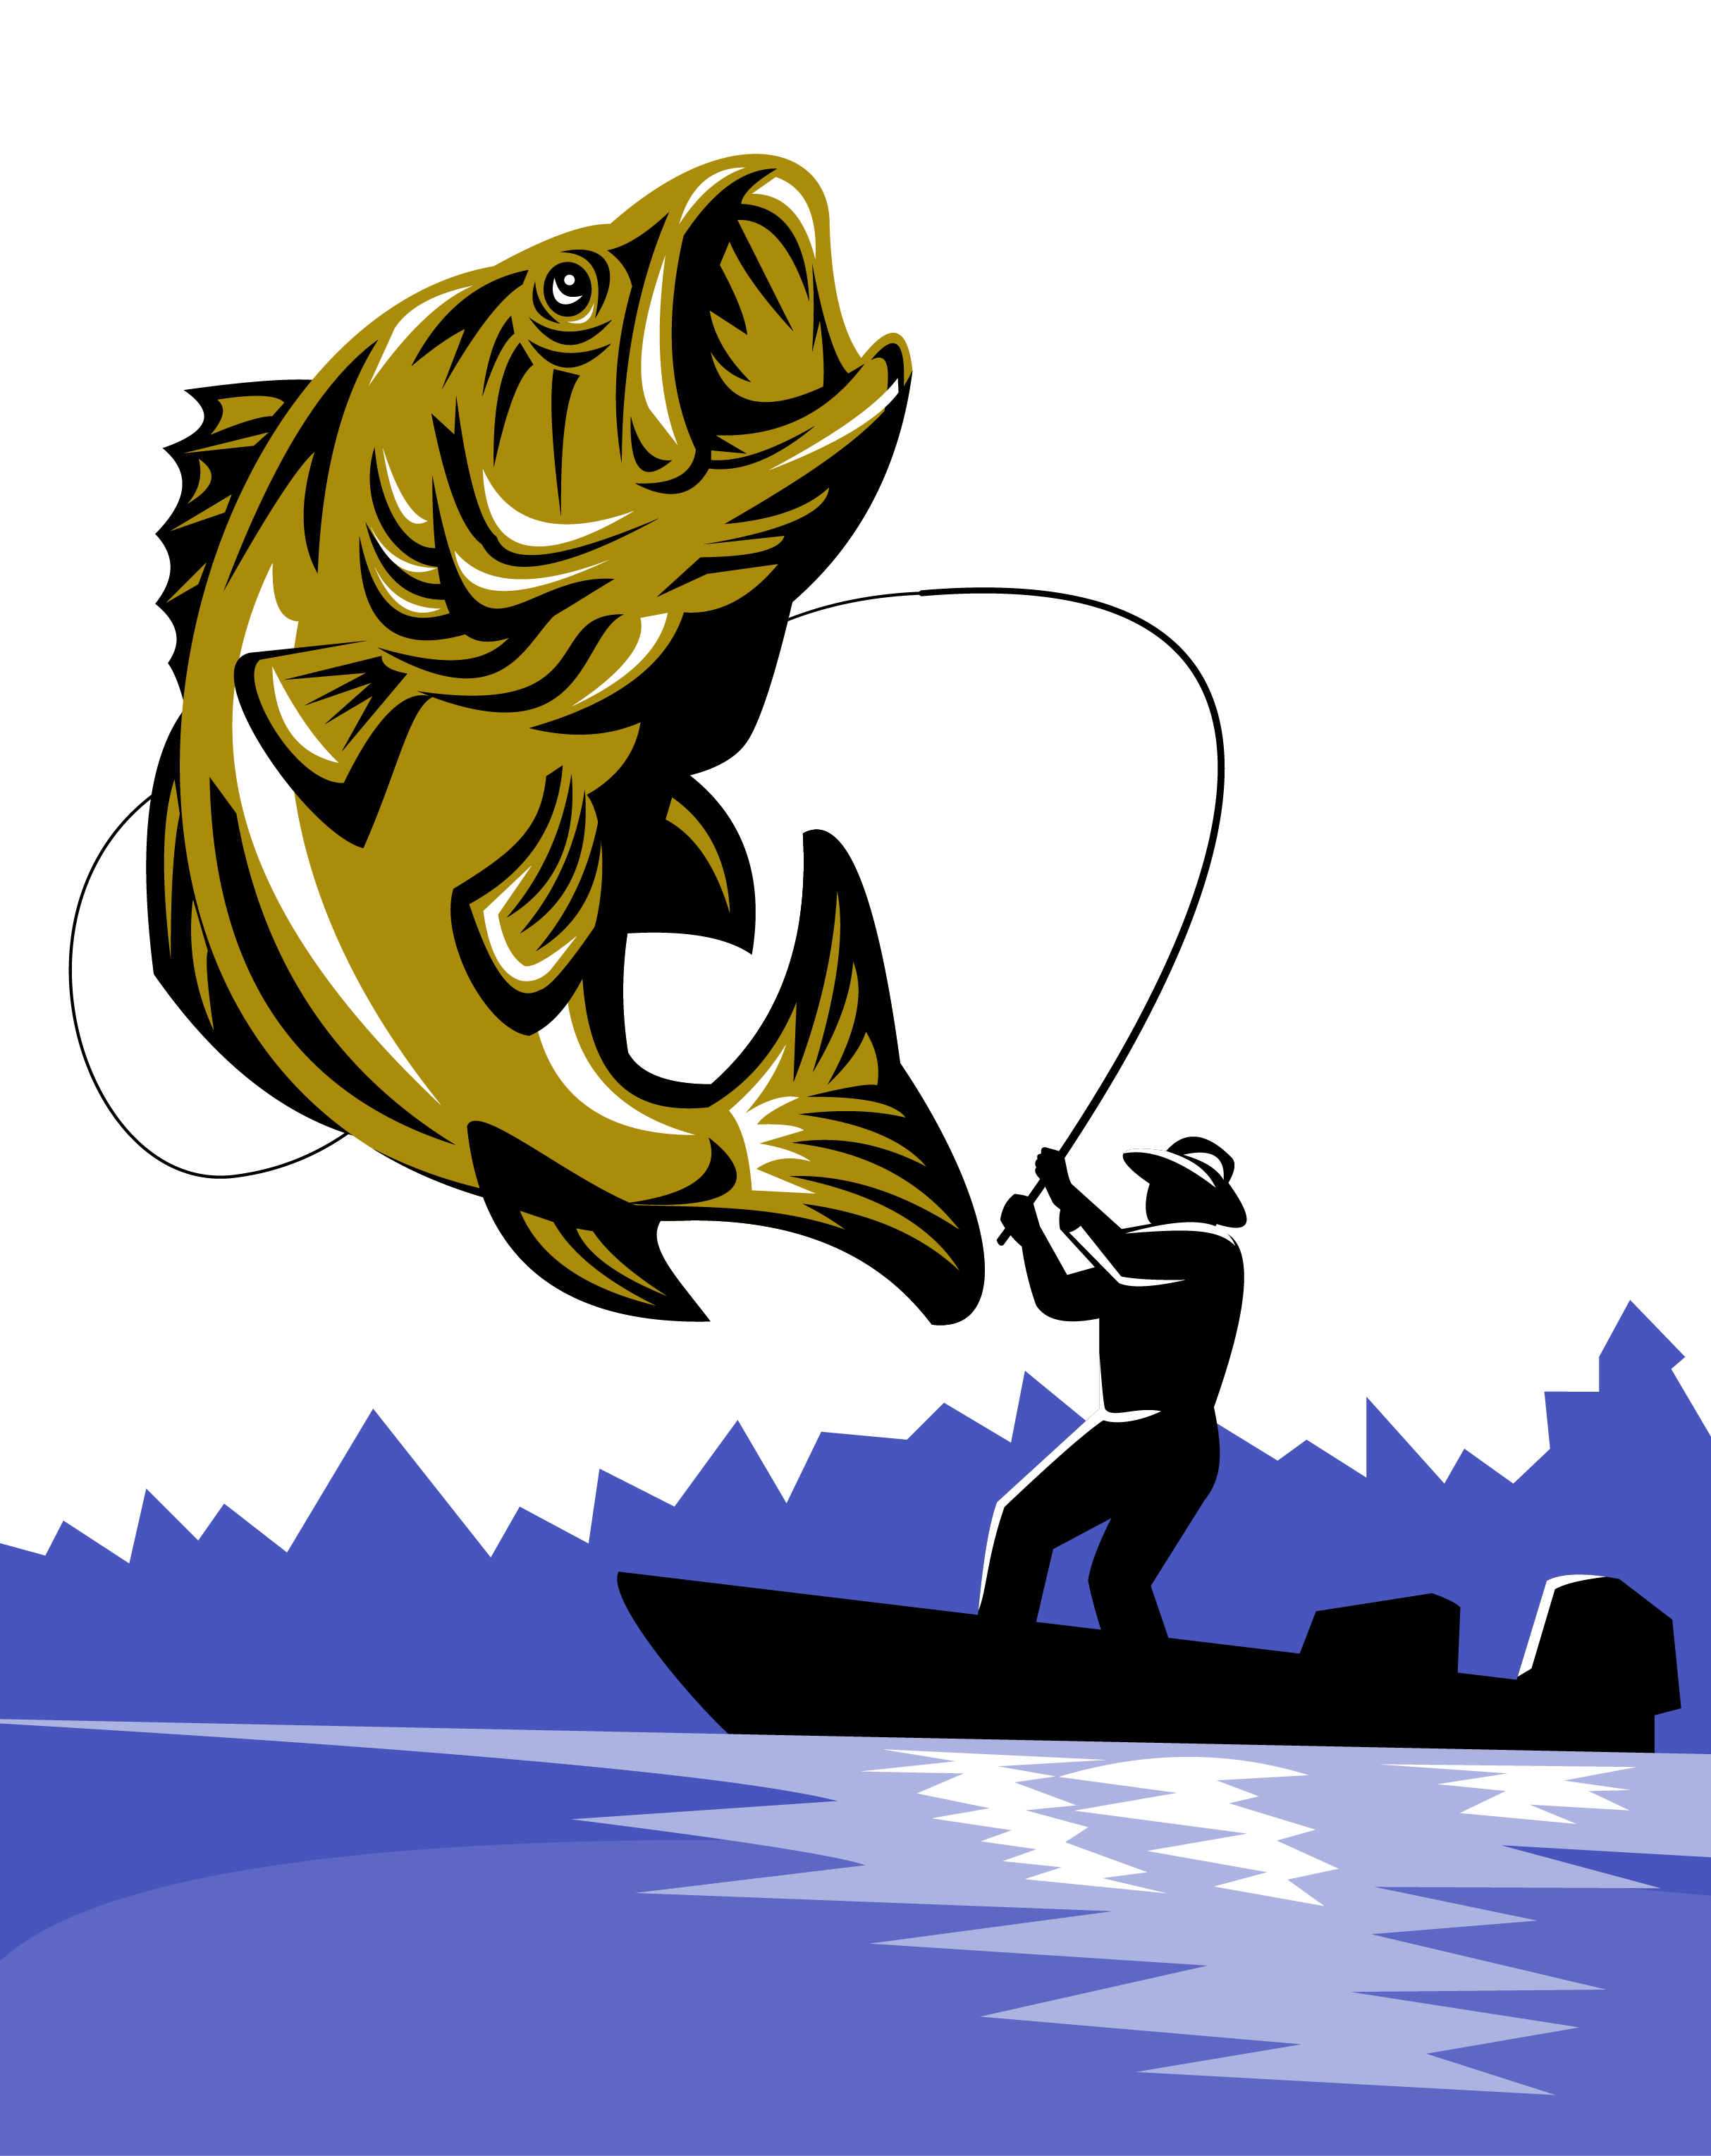 Bass fly rods transprent. Clipart fish fishing rod